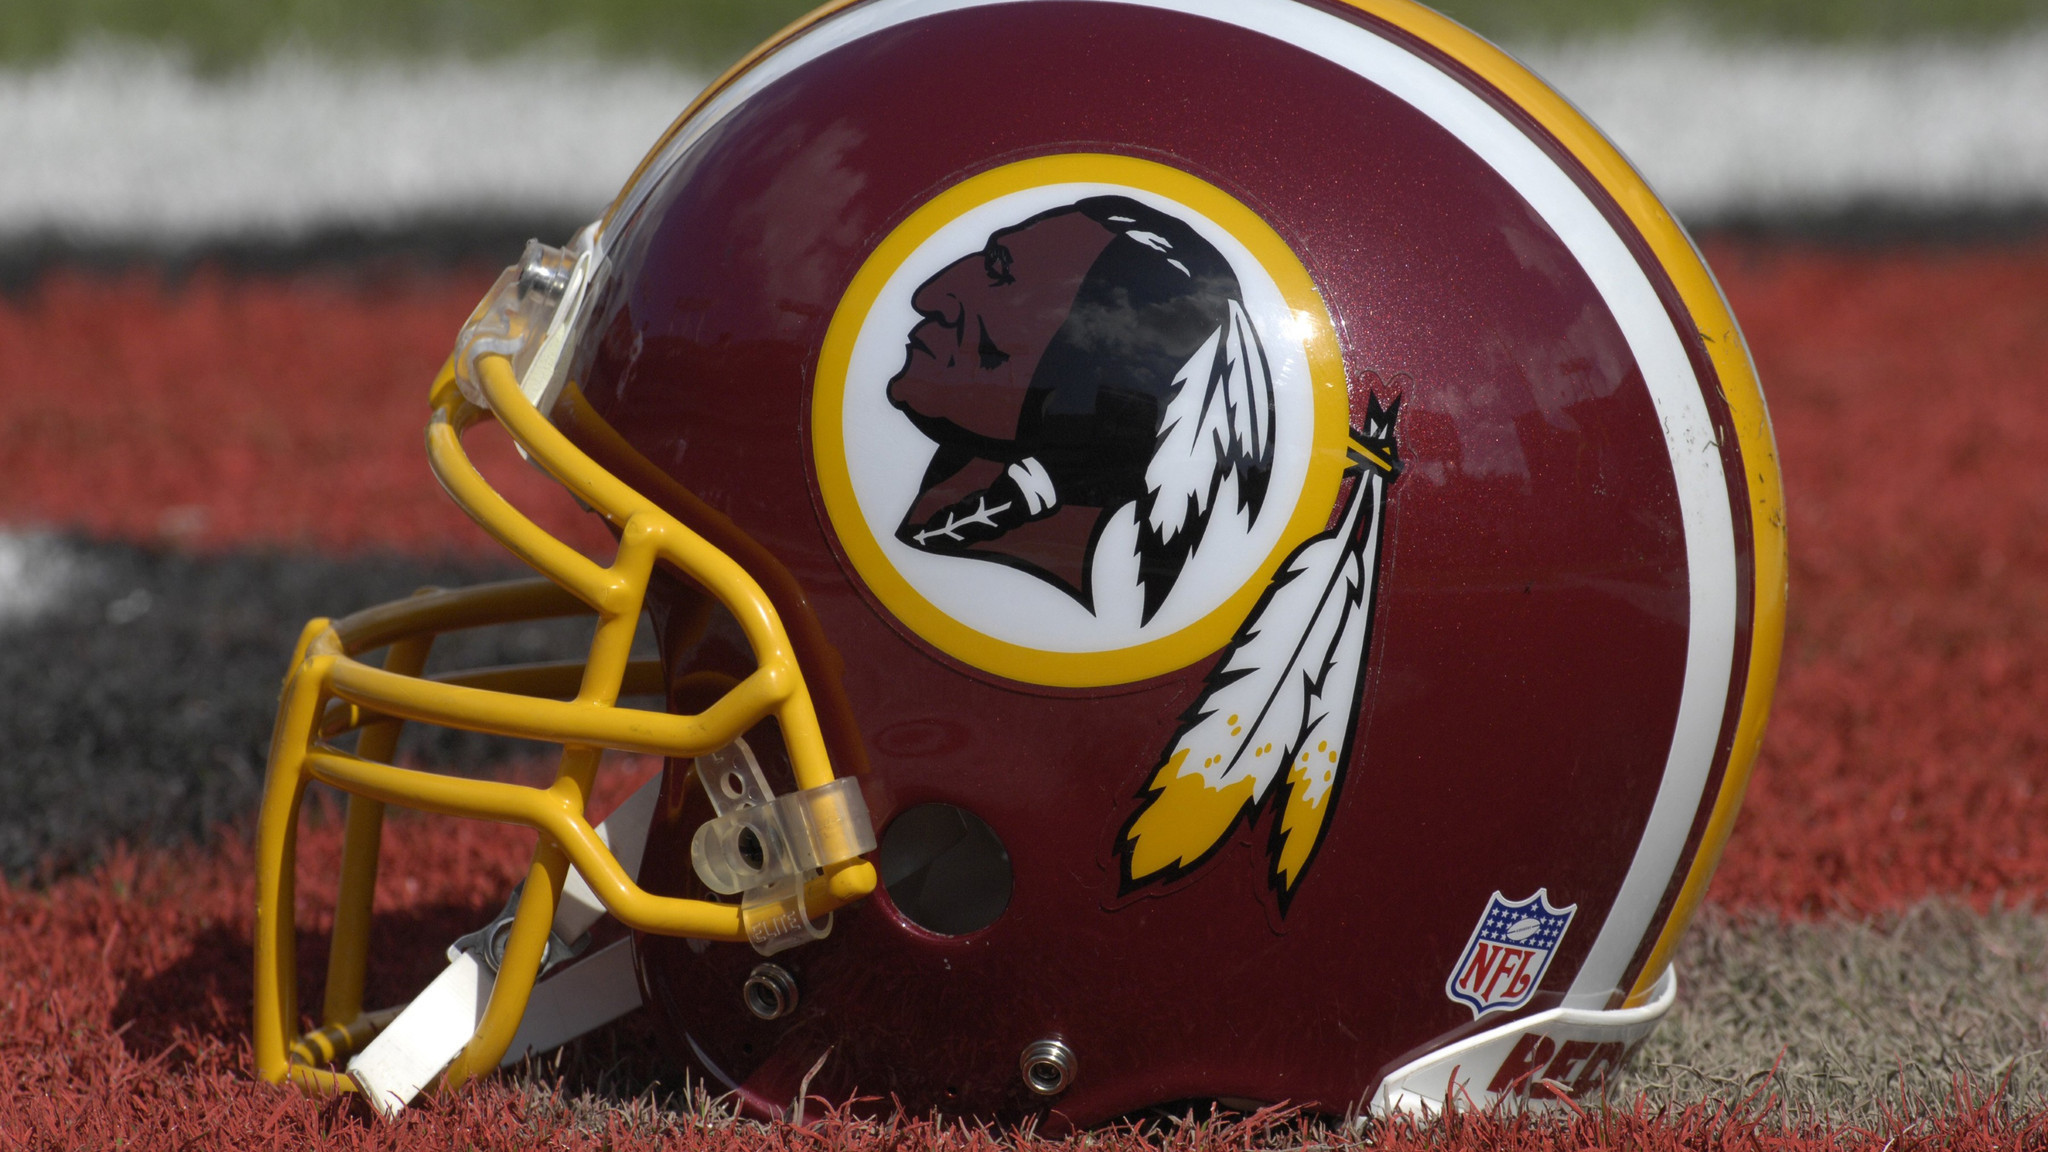 argumentation why native american mascots should not be used The widened use of native american mascot should not munson is unable to support her argument washington redskins the native american mascot controversy.